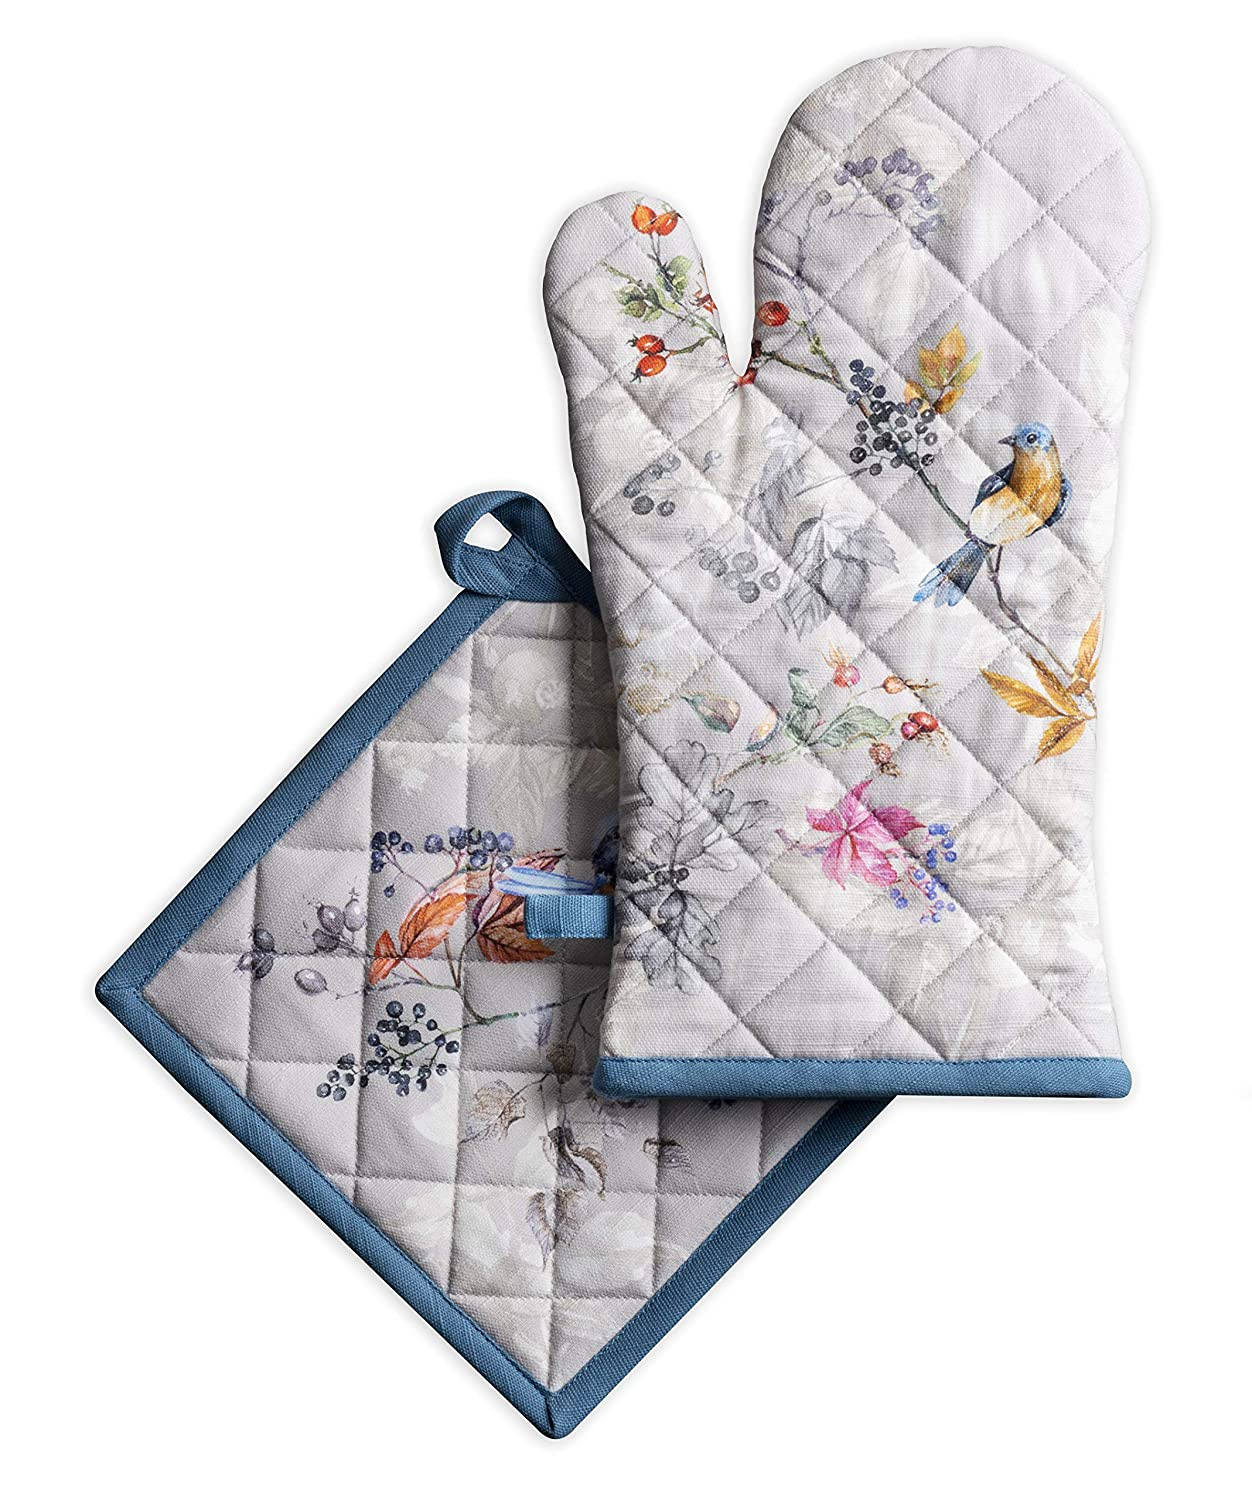 Maison d' Hermine Equinoxe 100% Cotton Grey Set of Oven mitt (7.5 Inch by 13 Inch) and Pot Holder (8 Inch by 8 Inch). Perfect for Thanksgiving and Christmas